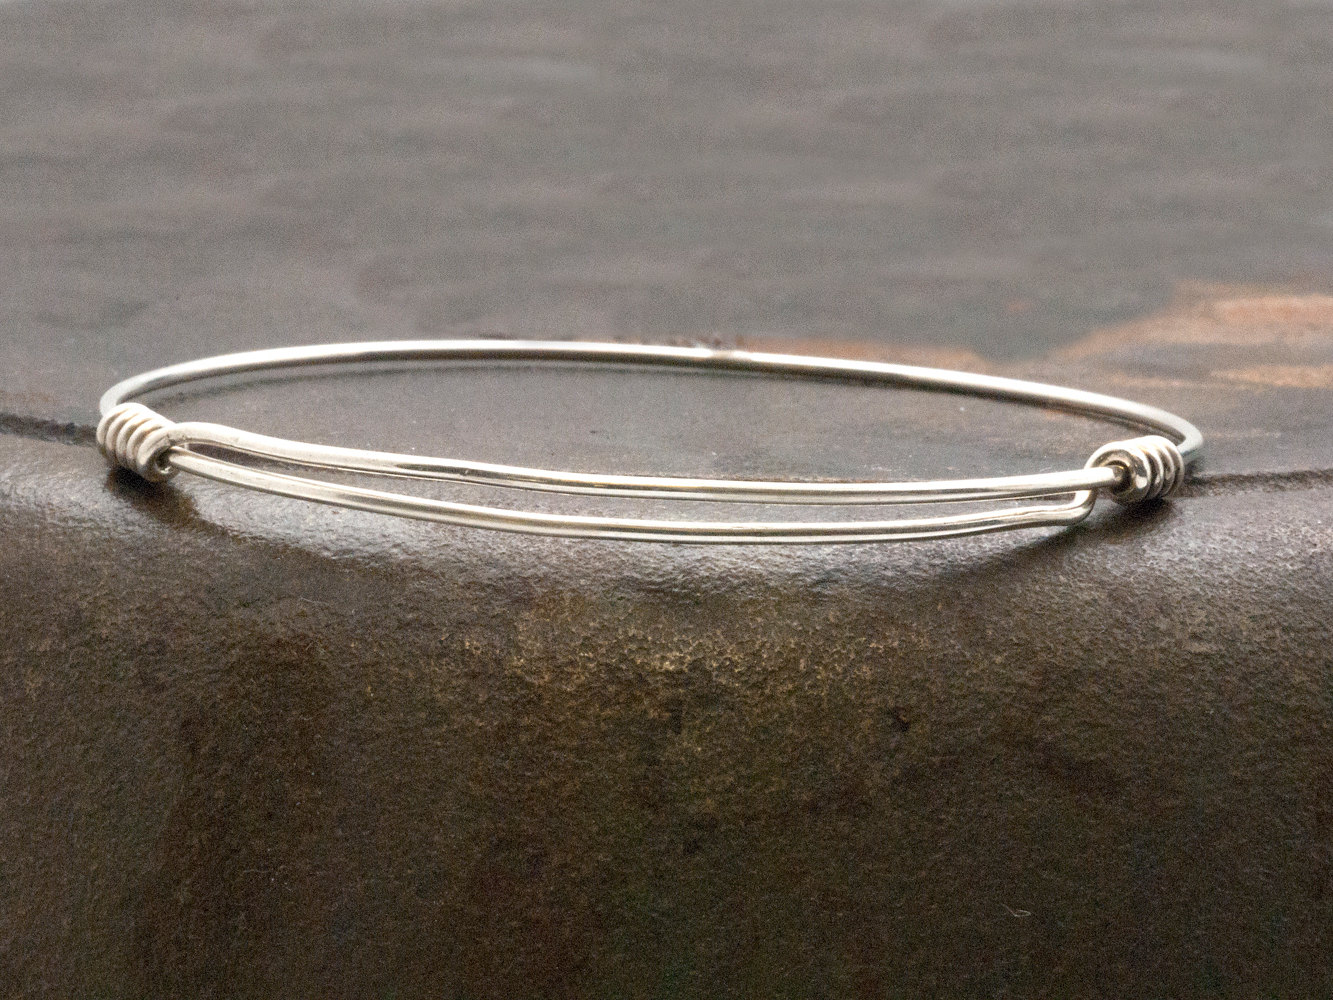 wide personalized bangles silver jewels of layering bangle stacking string bracelets thin bracelet hand stamped